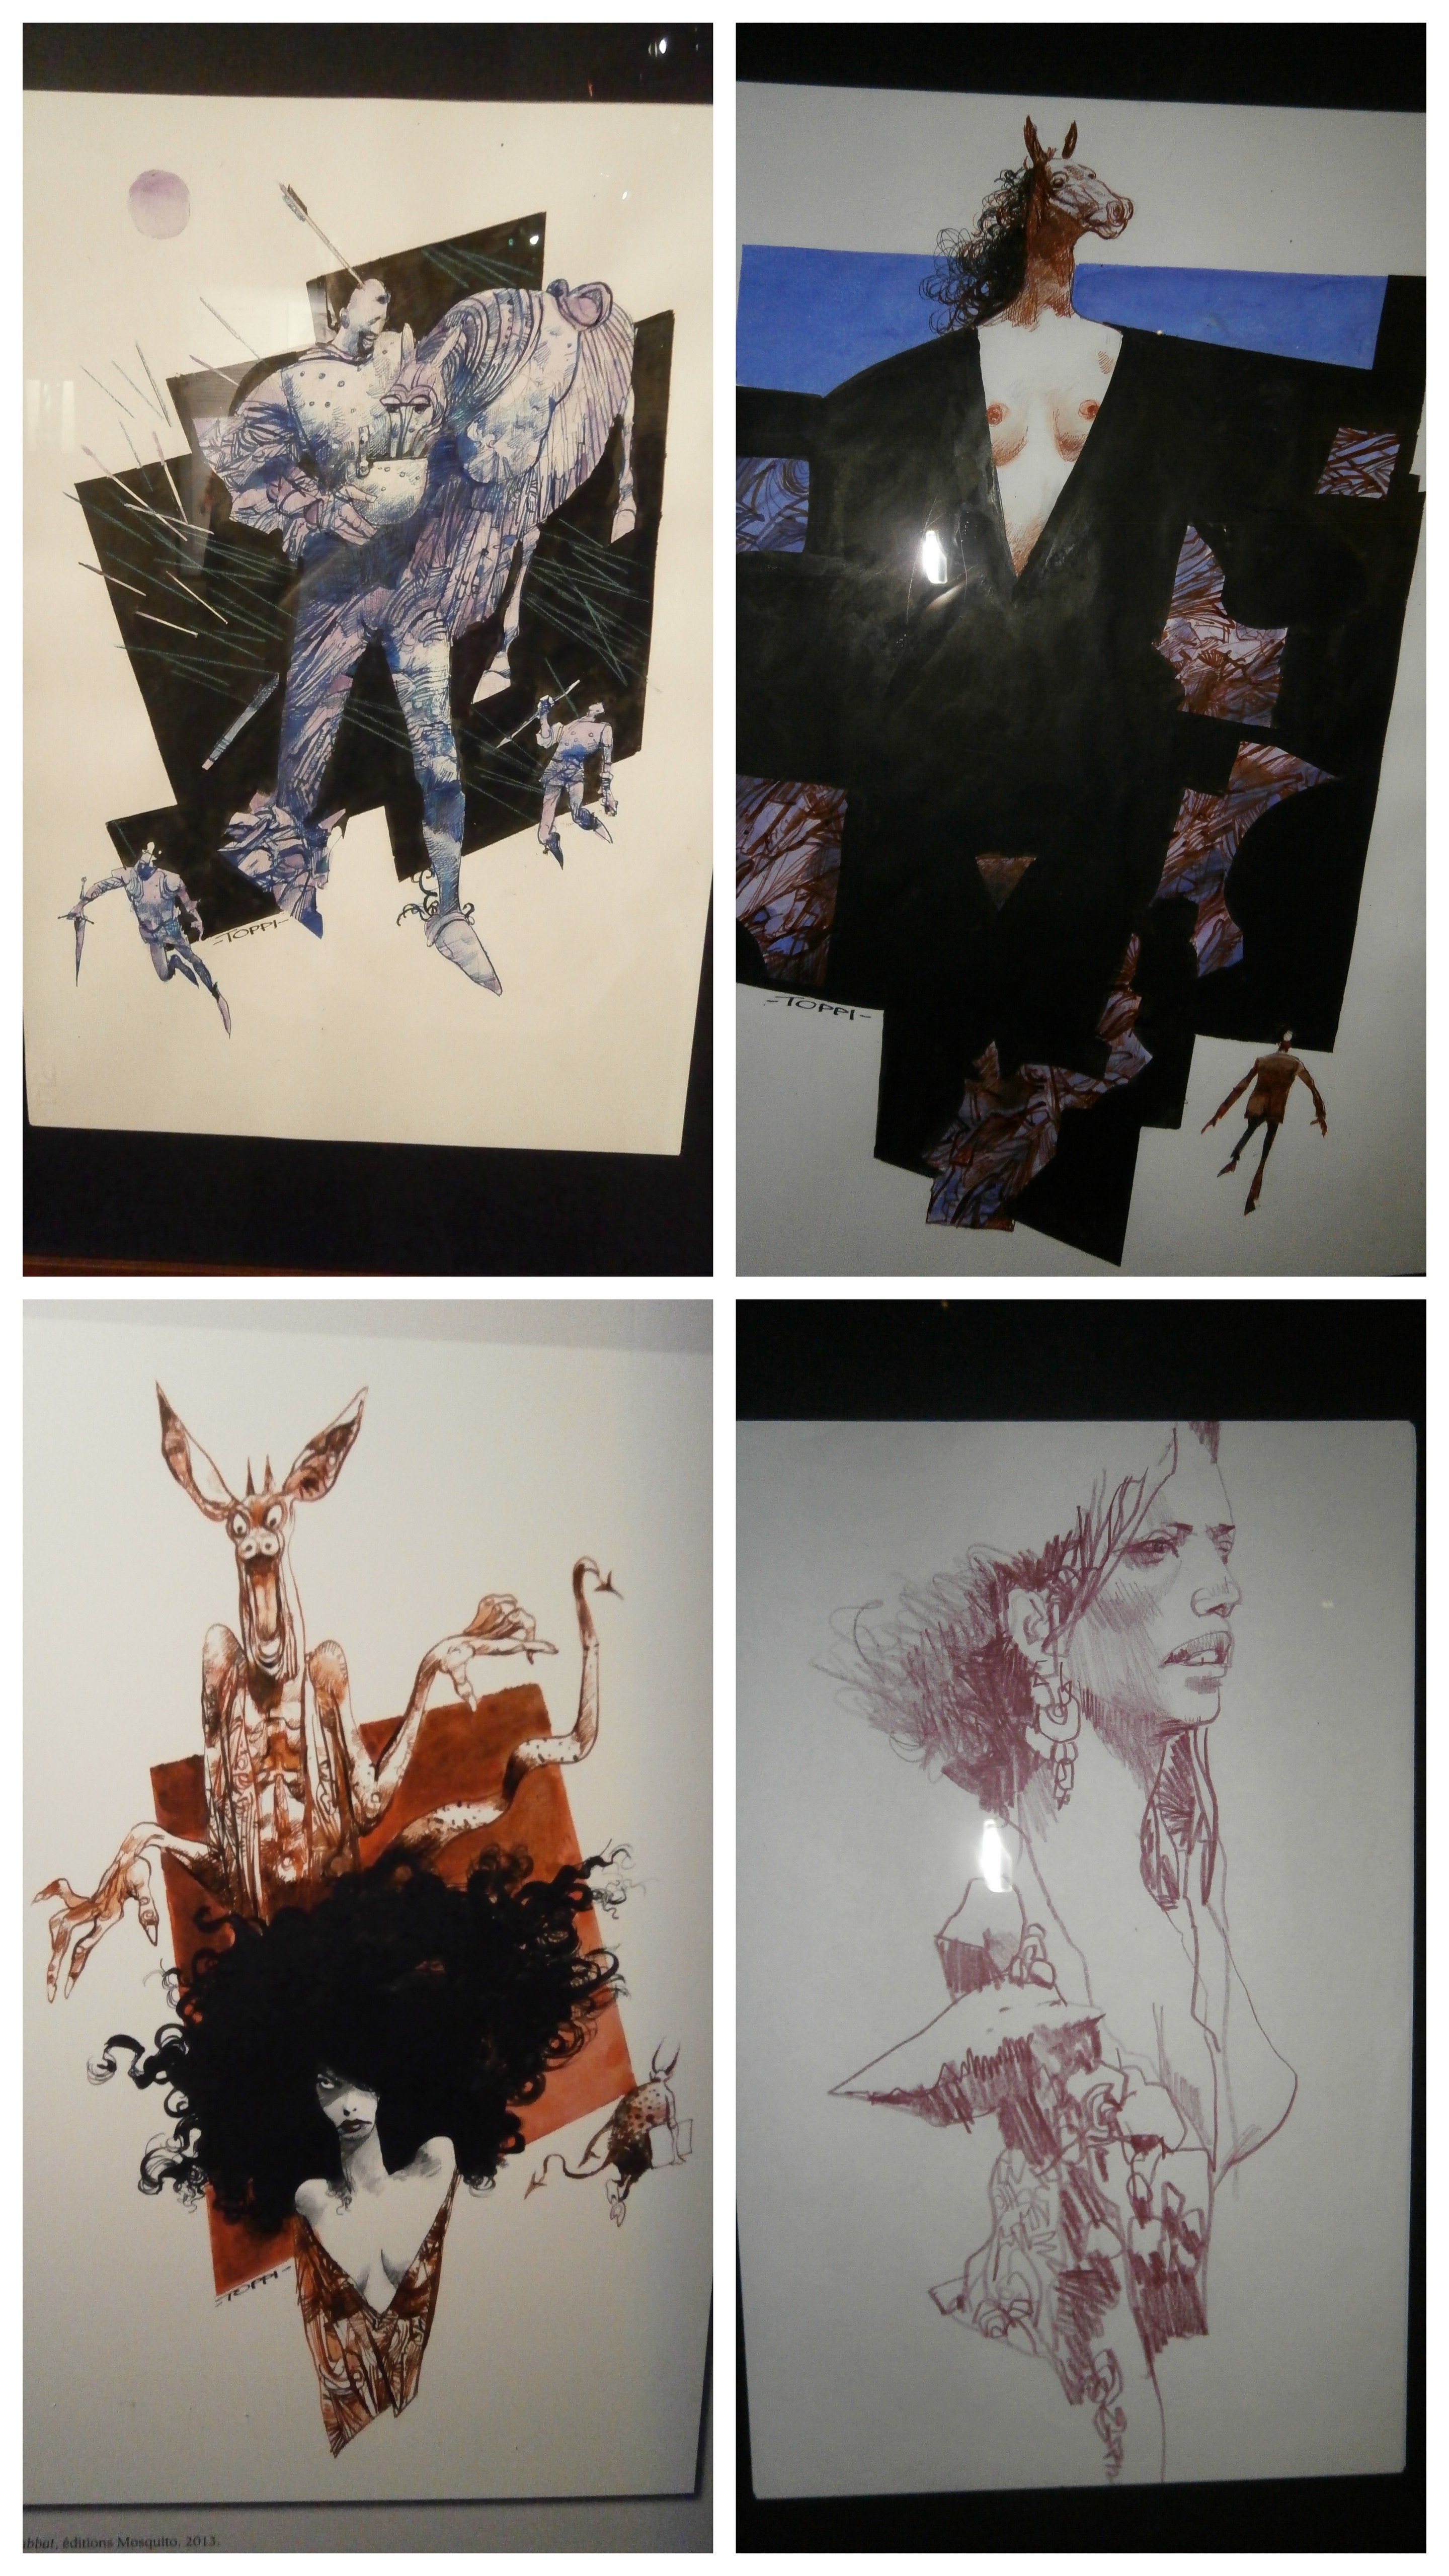 [inspi] Expositions / Musées / Salons... - Page 3 Toppi2